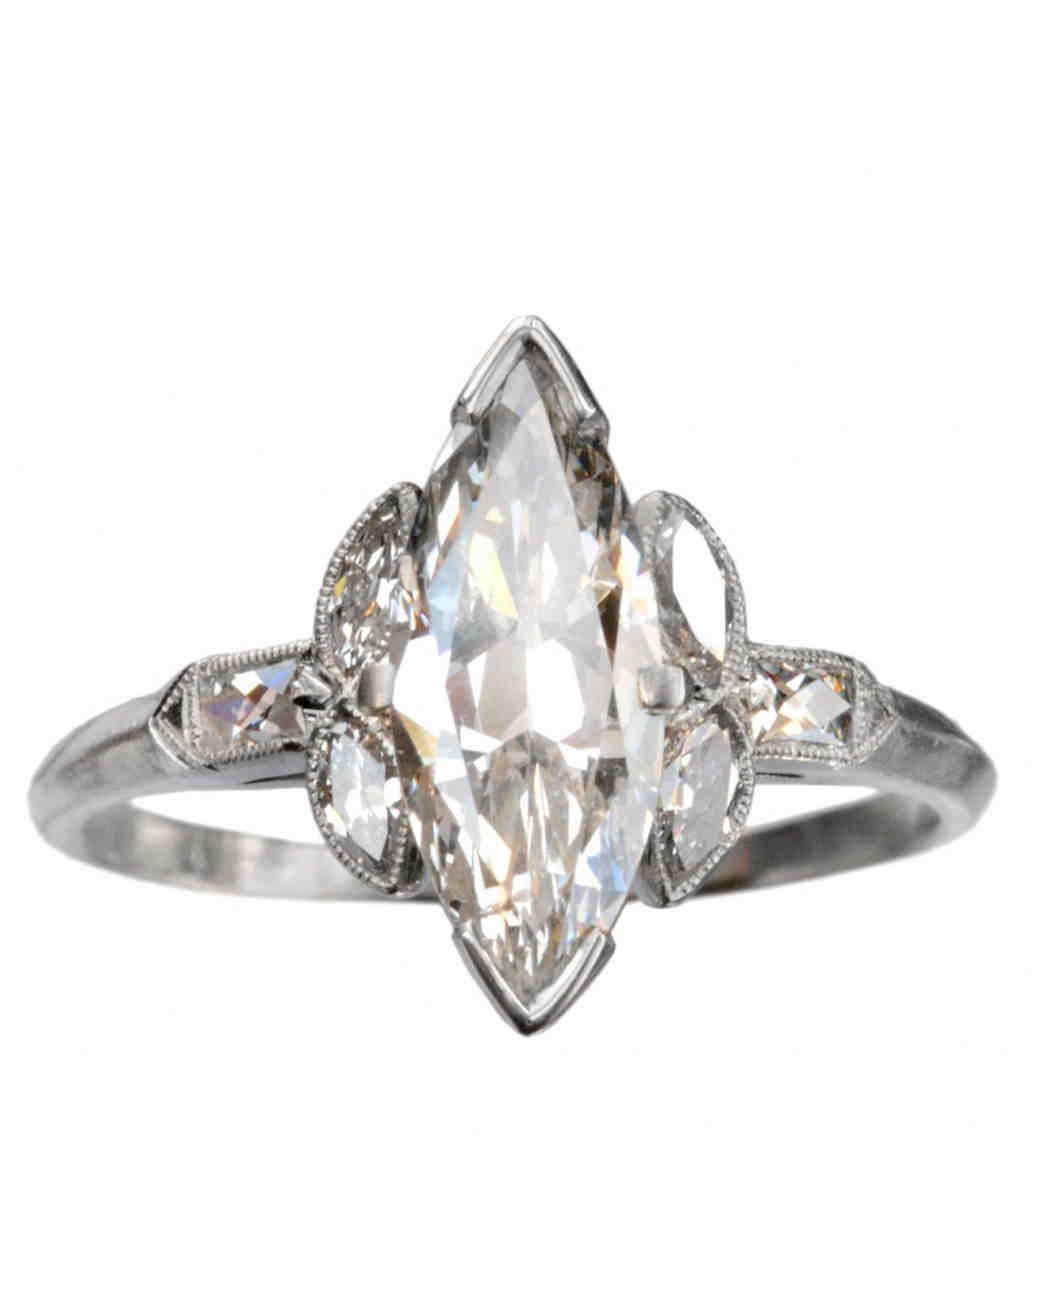 Erie Basin Marquise Cut 1920s Art Deco Engagement Ring